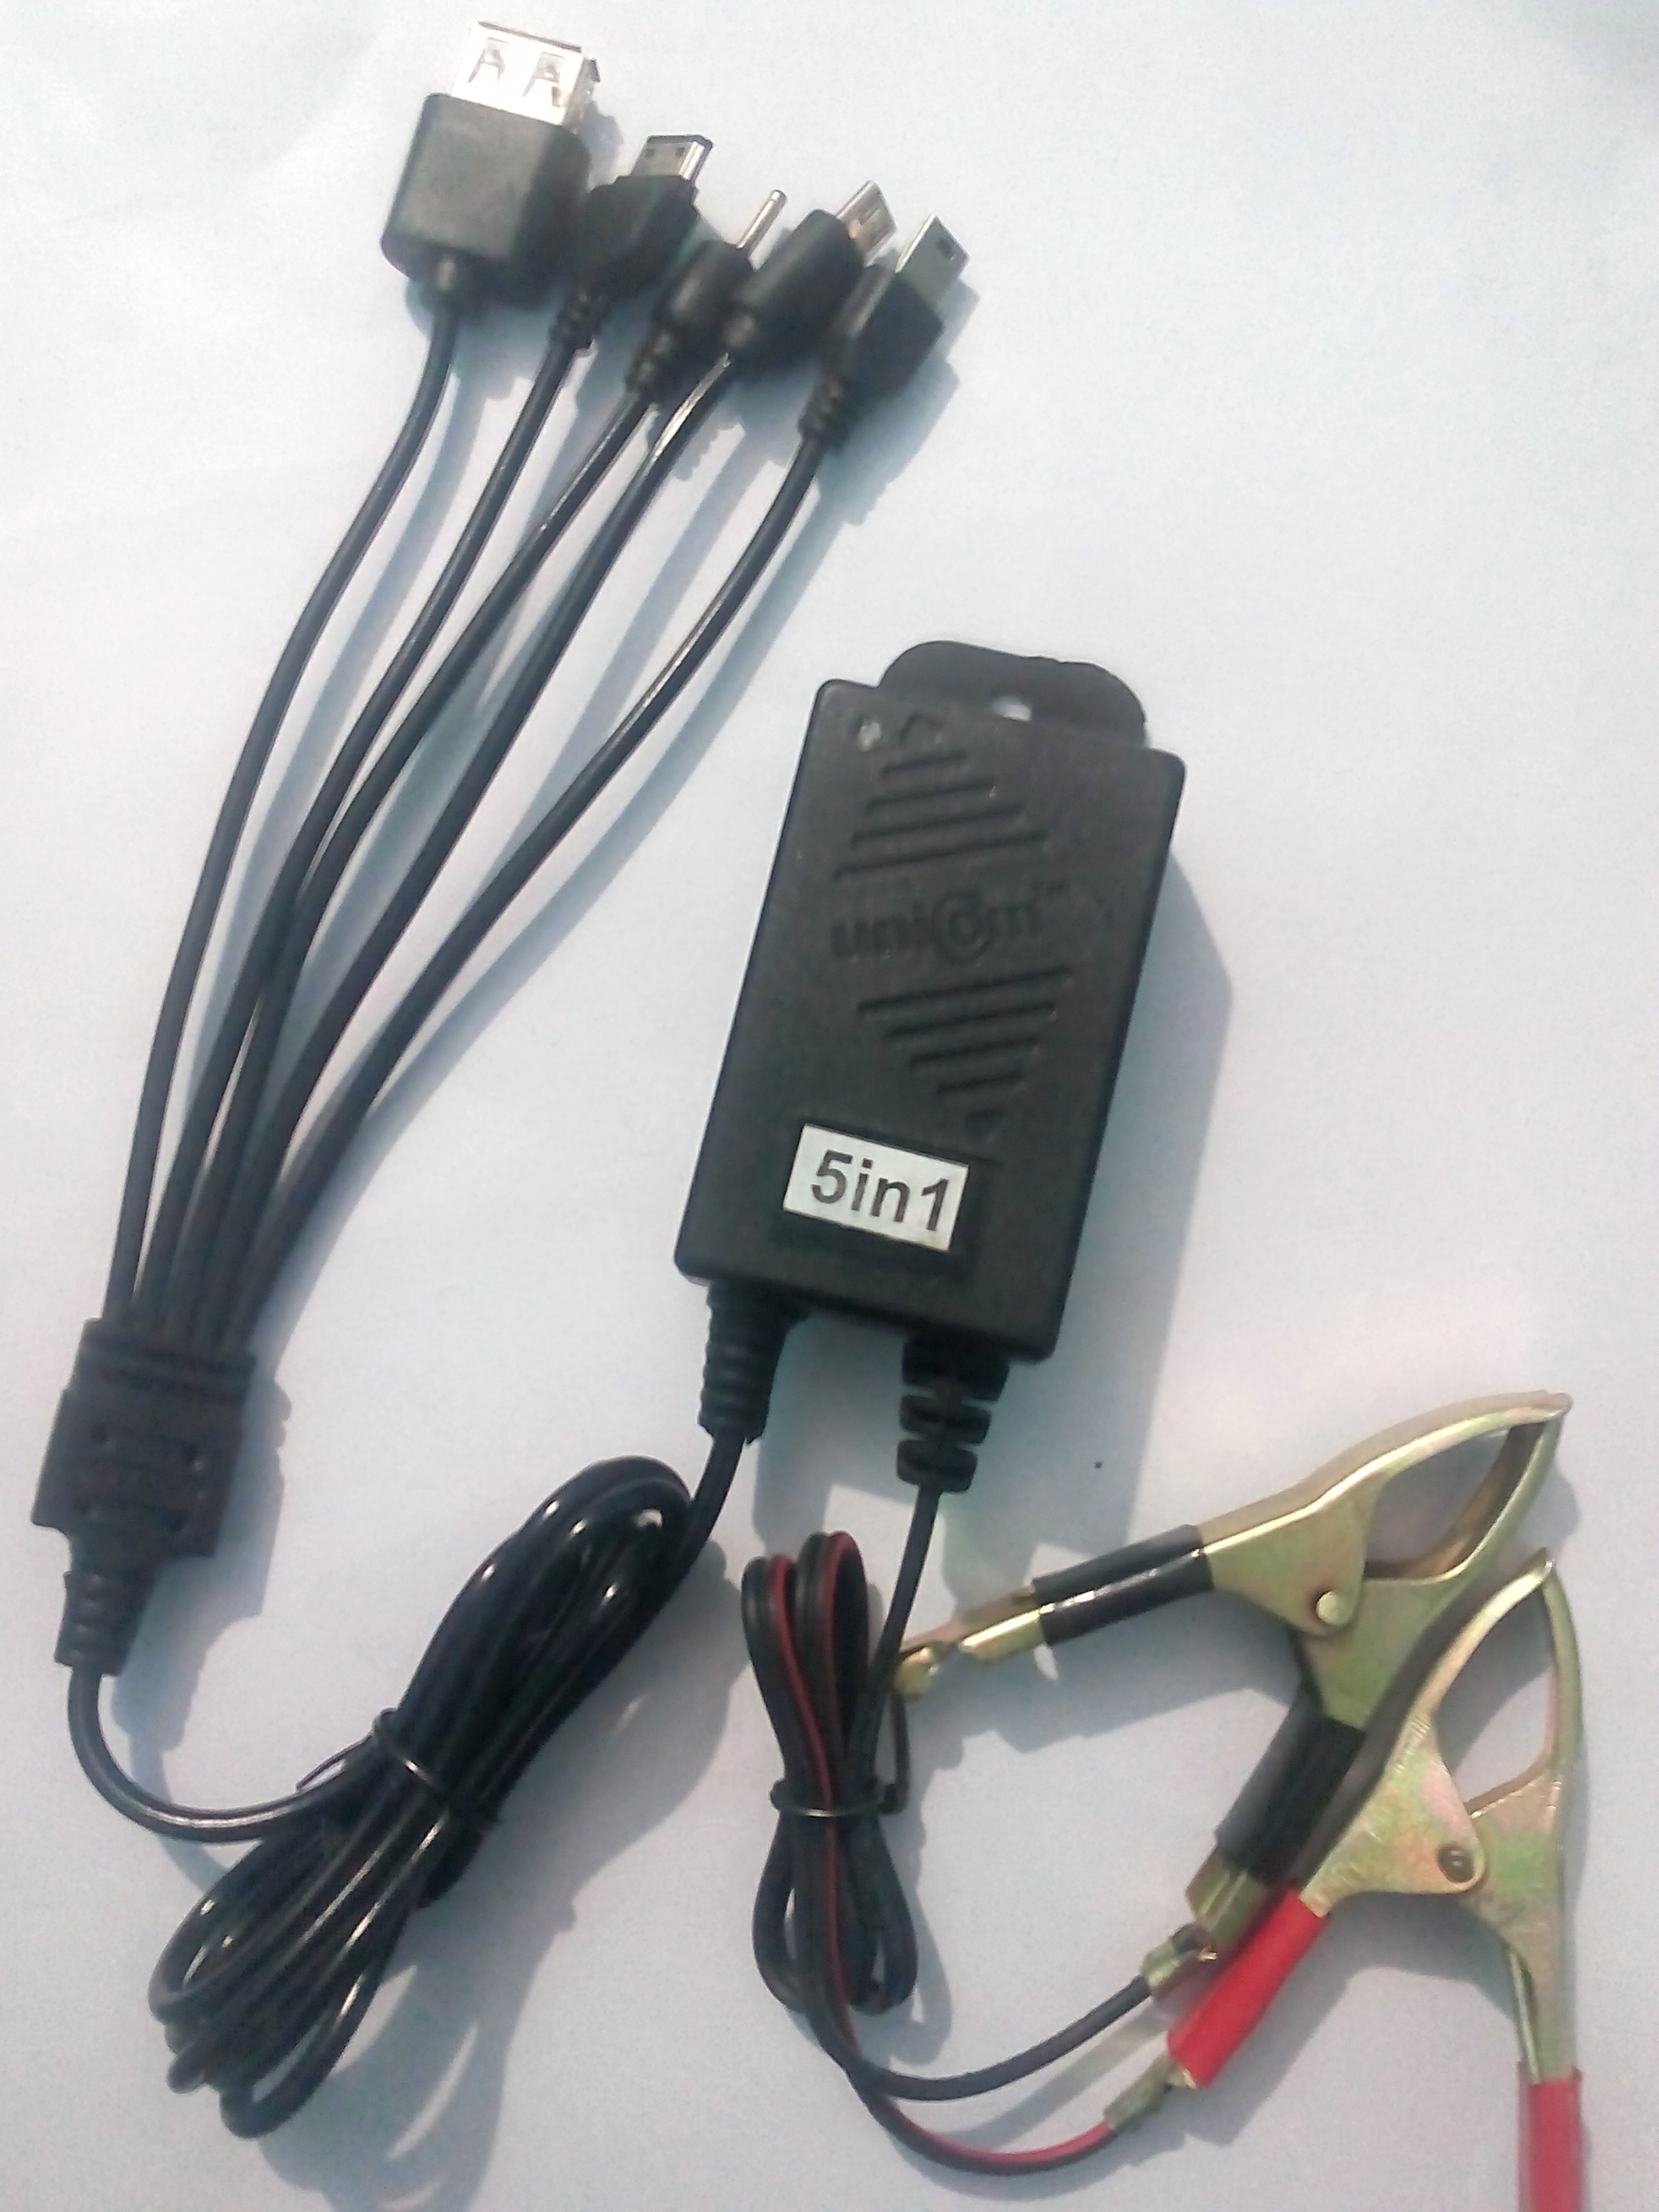 5in1 DC Charger